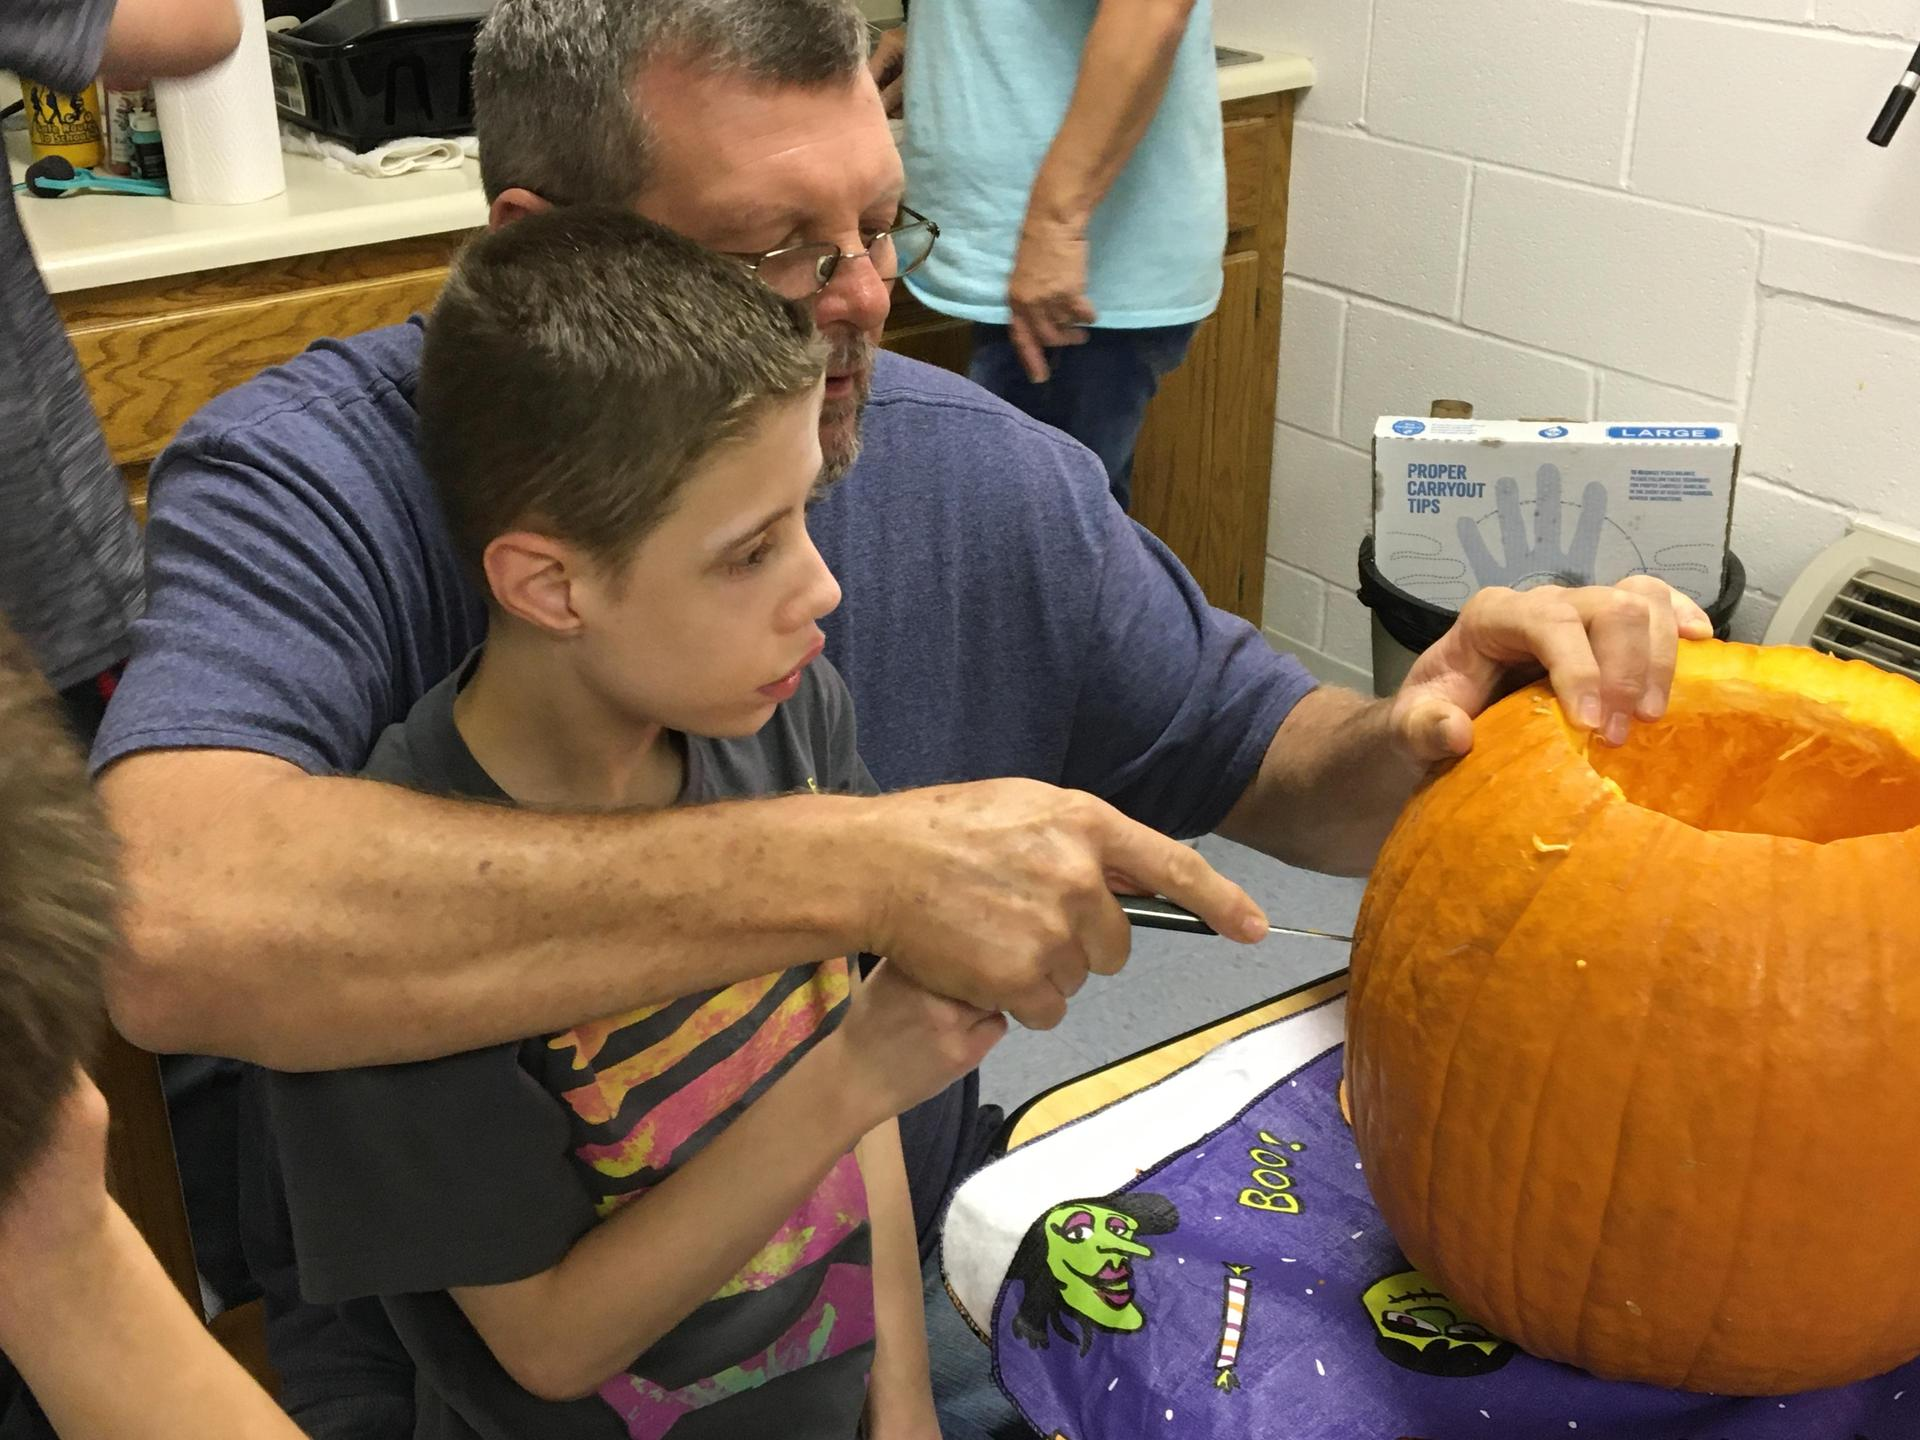 Student and RCs carving a pumpkin together while seated